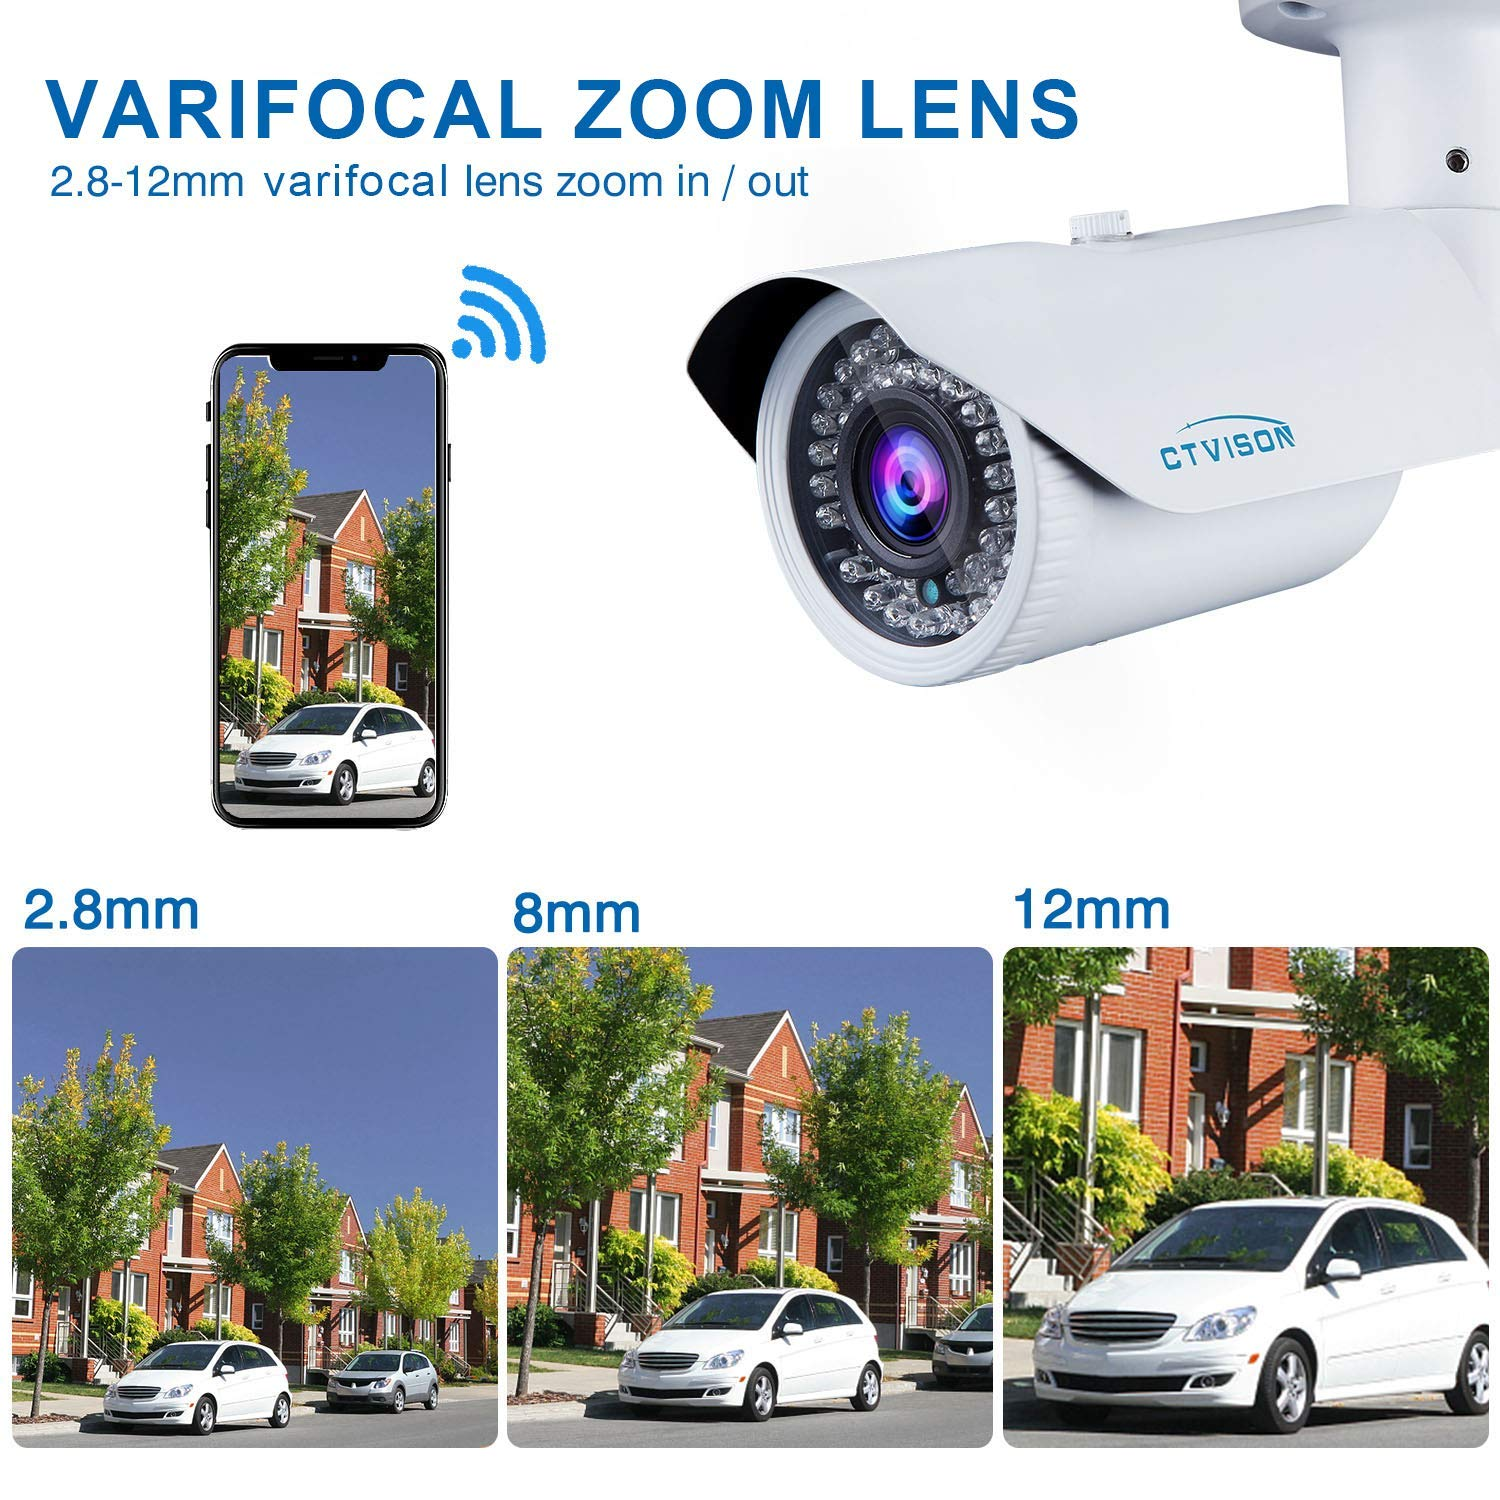 PoE IP Kamera Açık Mermi 2MP 4X Optik Varifocal Zoom Onvif Ses Güvenlik Gözetim HD1080P